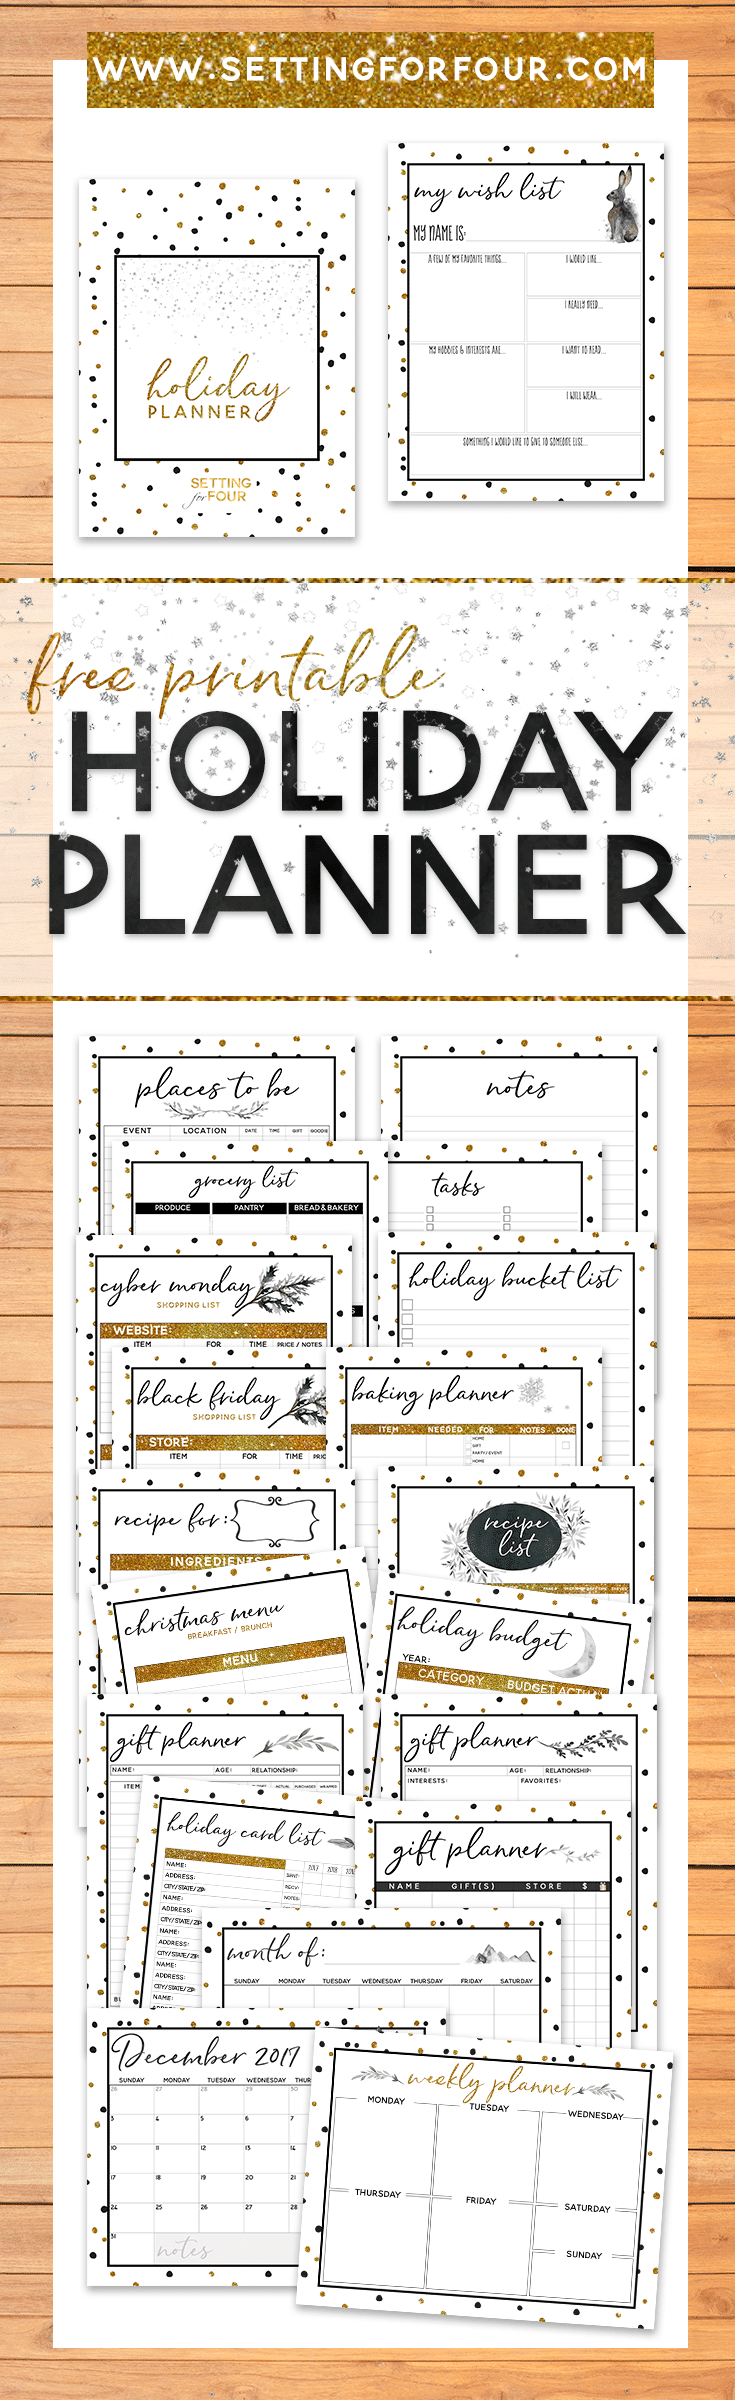 Take the stress out of the holidays, get organized and STAY SANE with this FREE Holiday Planner Pack that includes 27 Free Printable Pages to plan Christmas! You won't forget a thing this holiday and you'll love the CHIC gold, black and white sparkly design! Includes FREE printable checklists & tracking sheets for gift lists, menus, places to be and calendars too! #free #holiday #christmas #planner #printable #organization